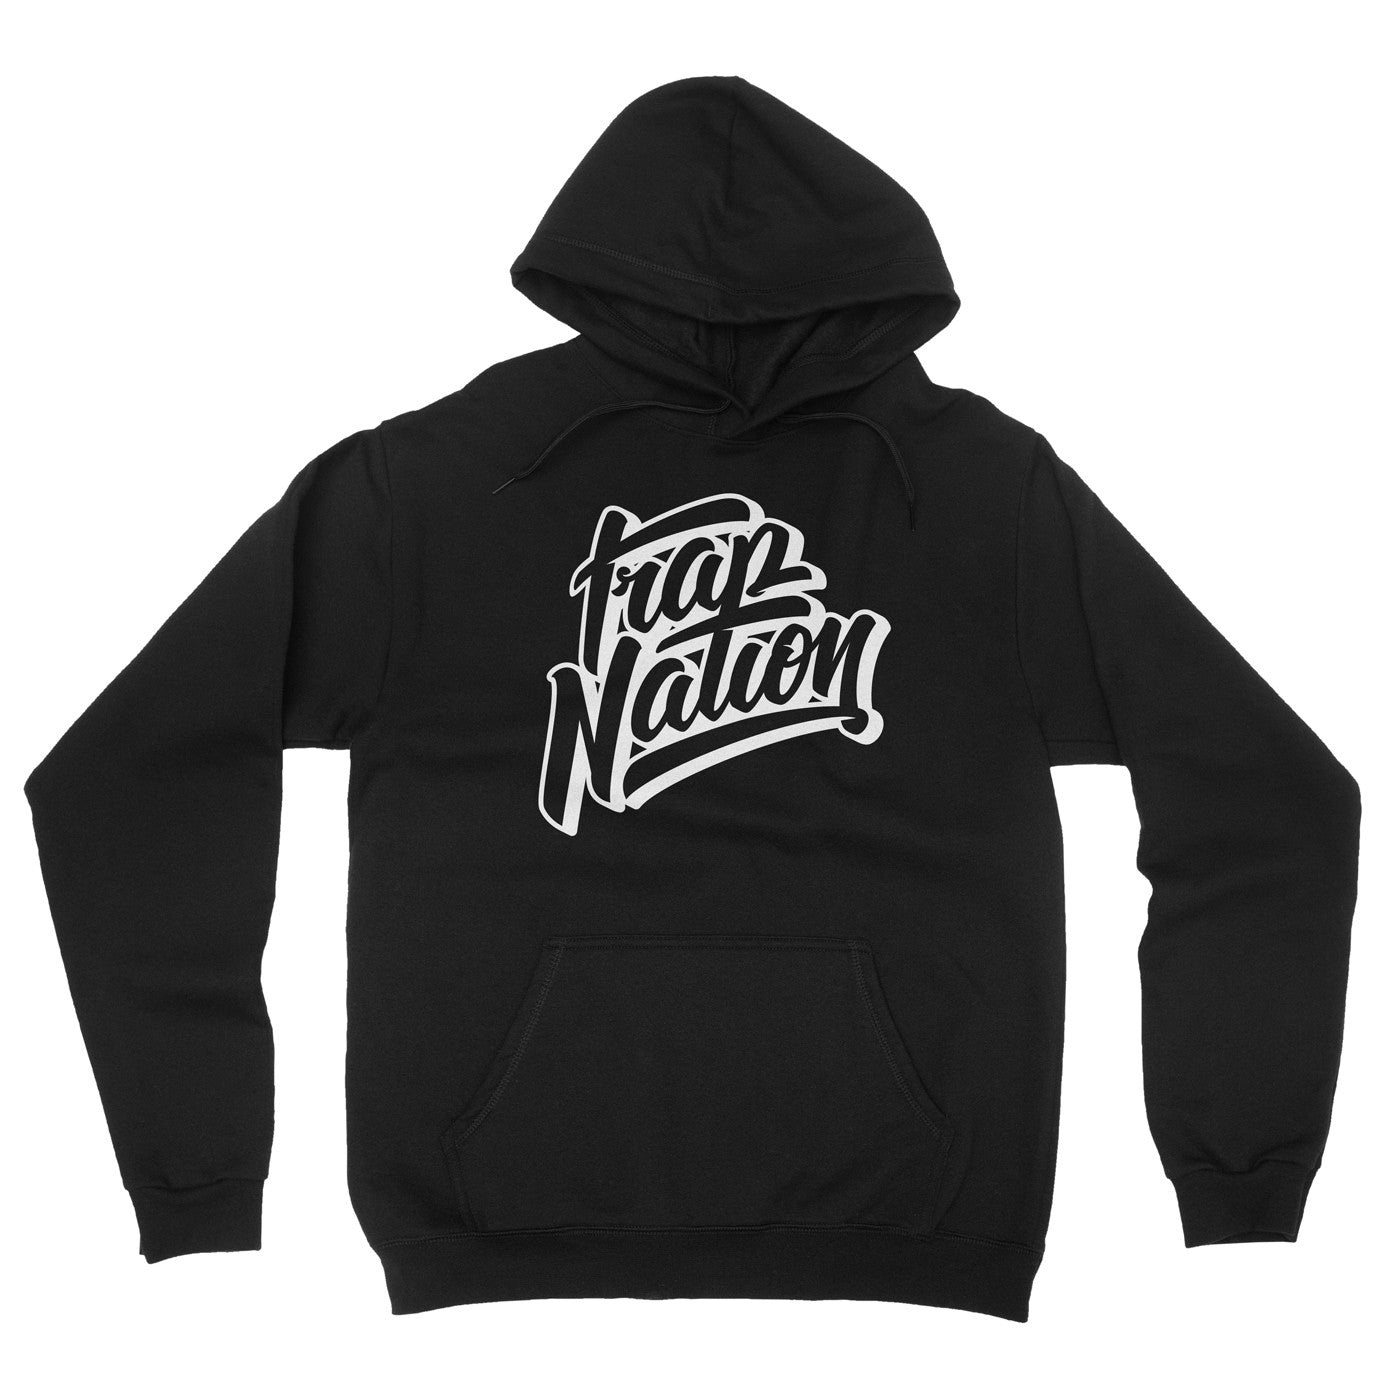 Trap Nation Hoodie / Black